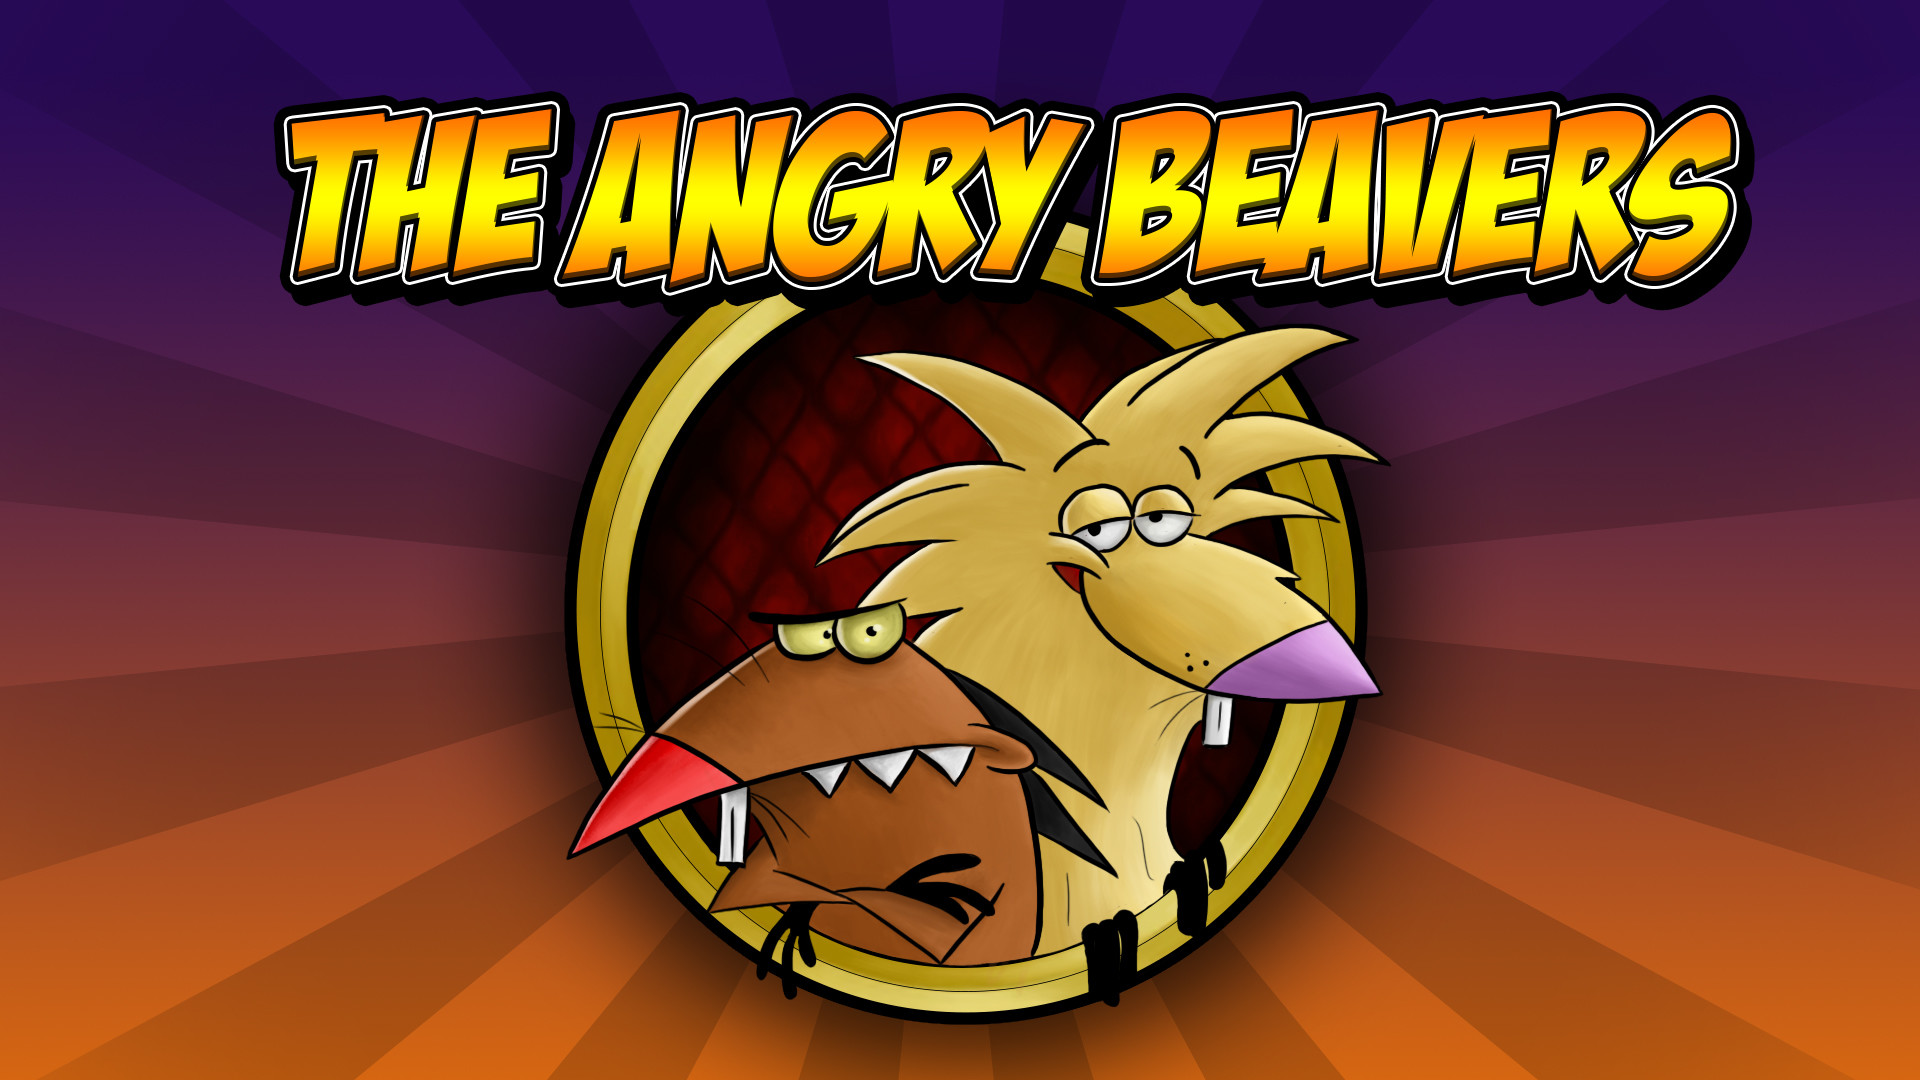 Angry Beavers Wallpaper 64 Pictures